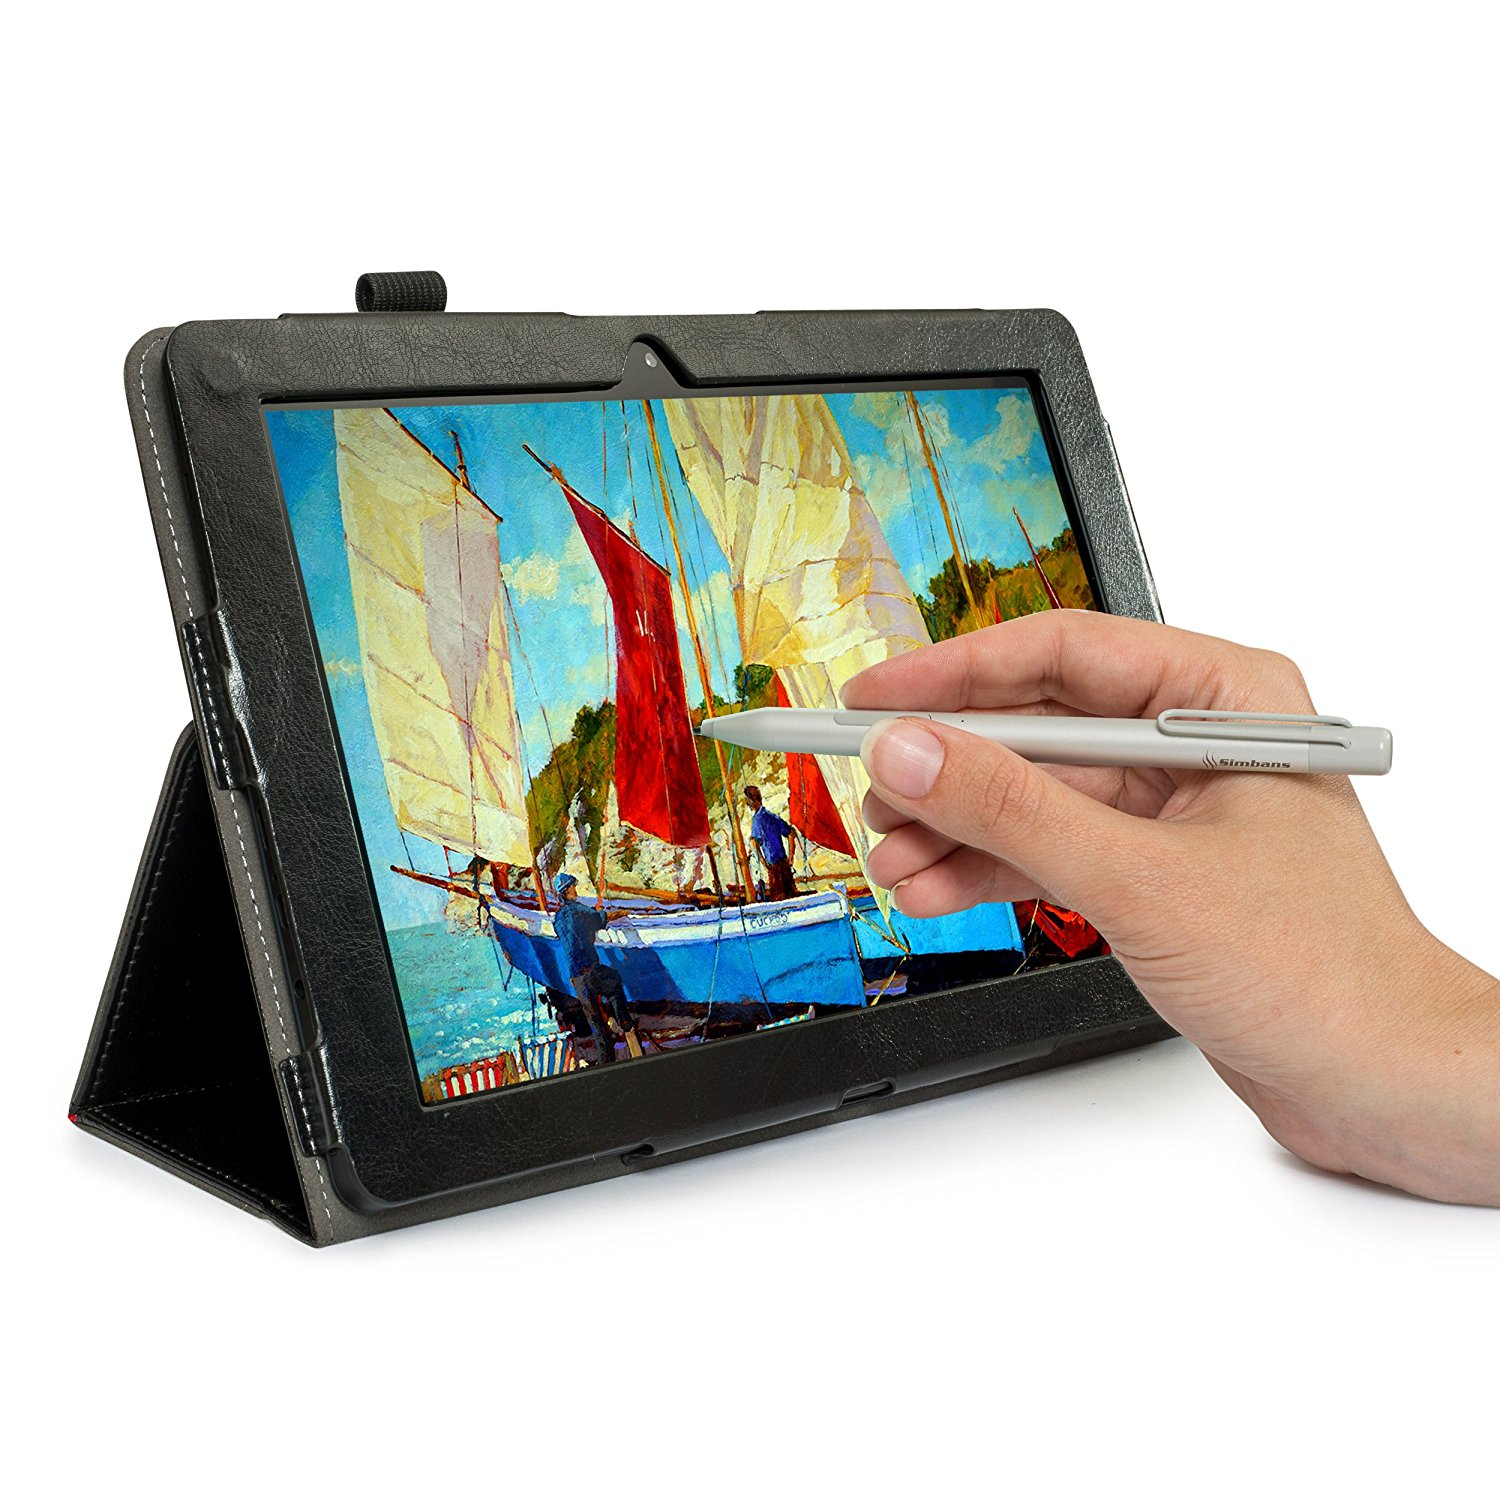 Simbans PicassoTab Drawing Tablet